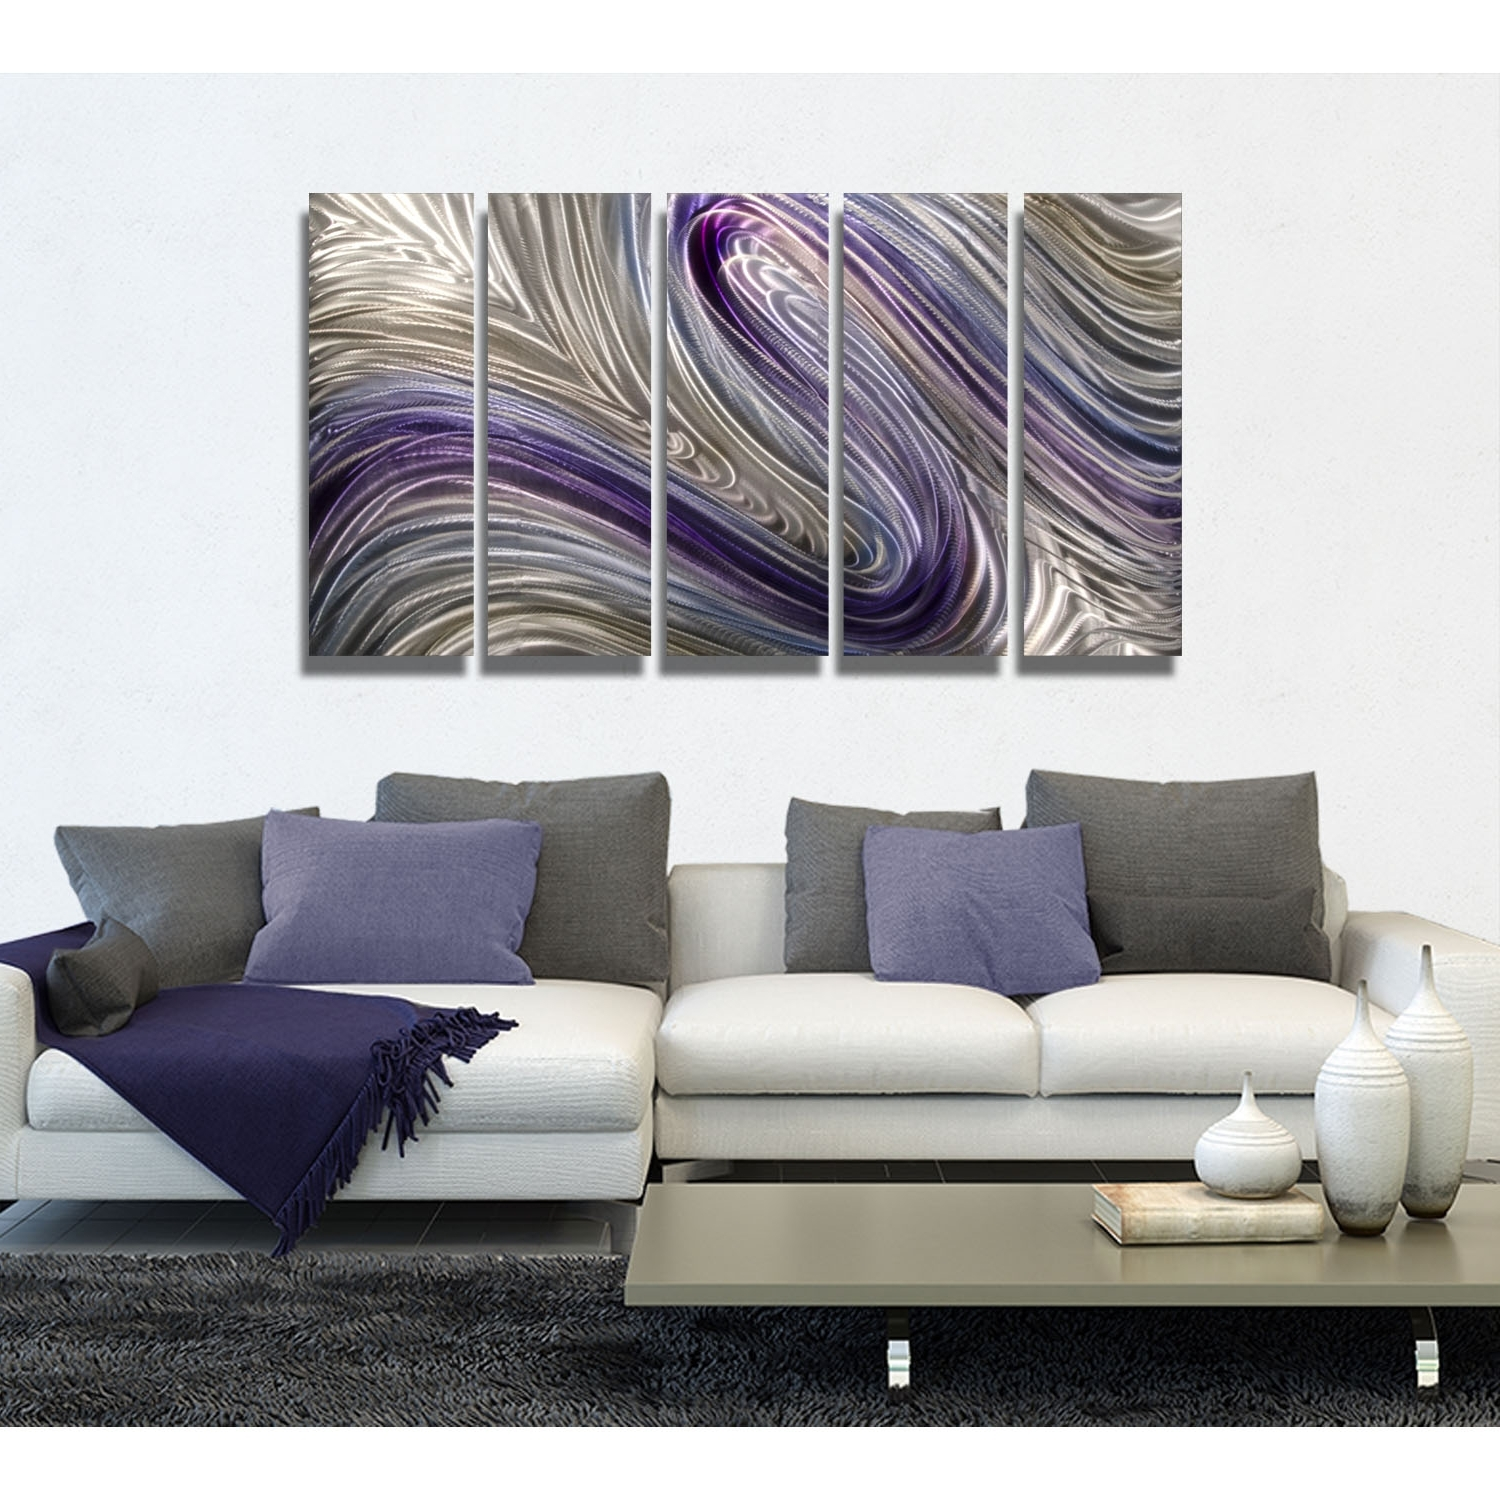 Purple And Grey Wall Art For Current Reverie – Purple, Silver And Gold Metal Wall Art – 5 Panel Wall (View 8 of 15)